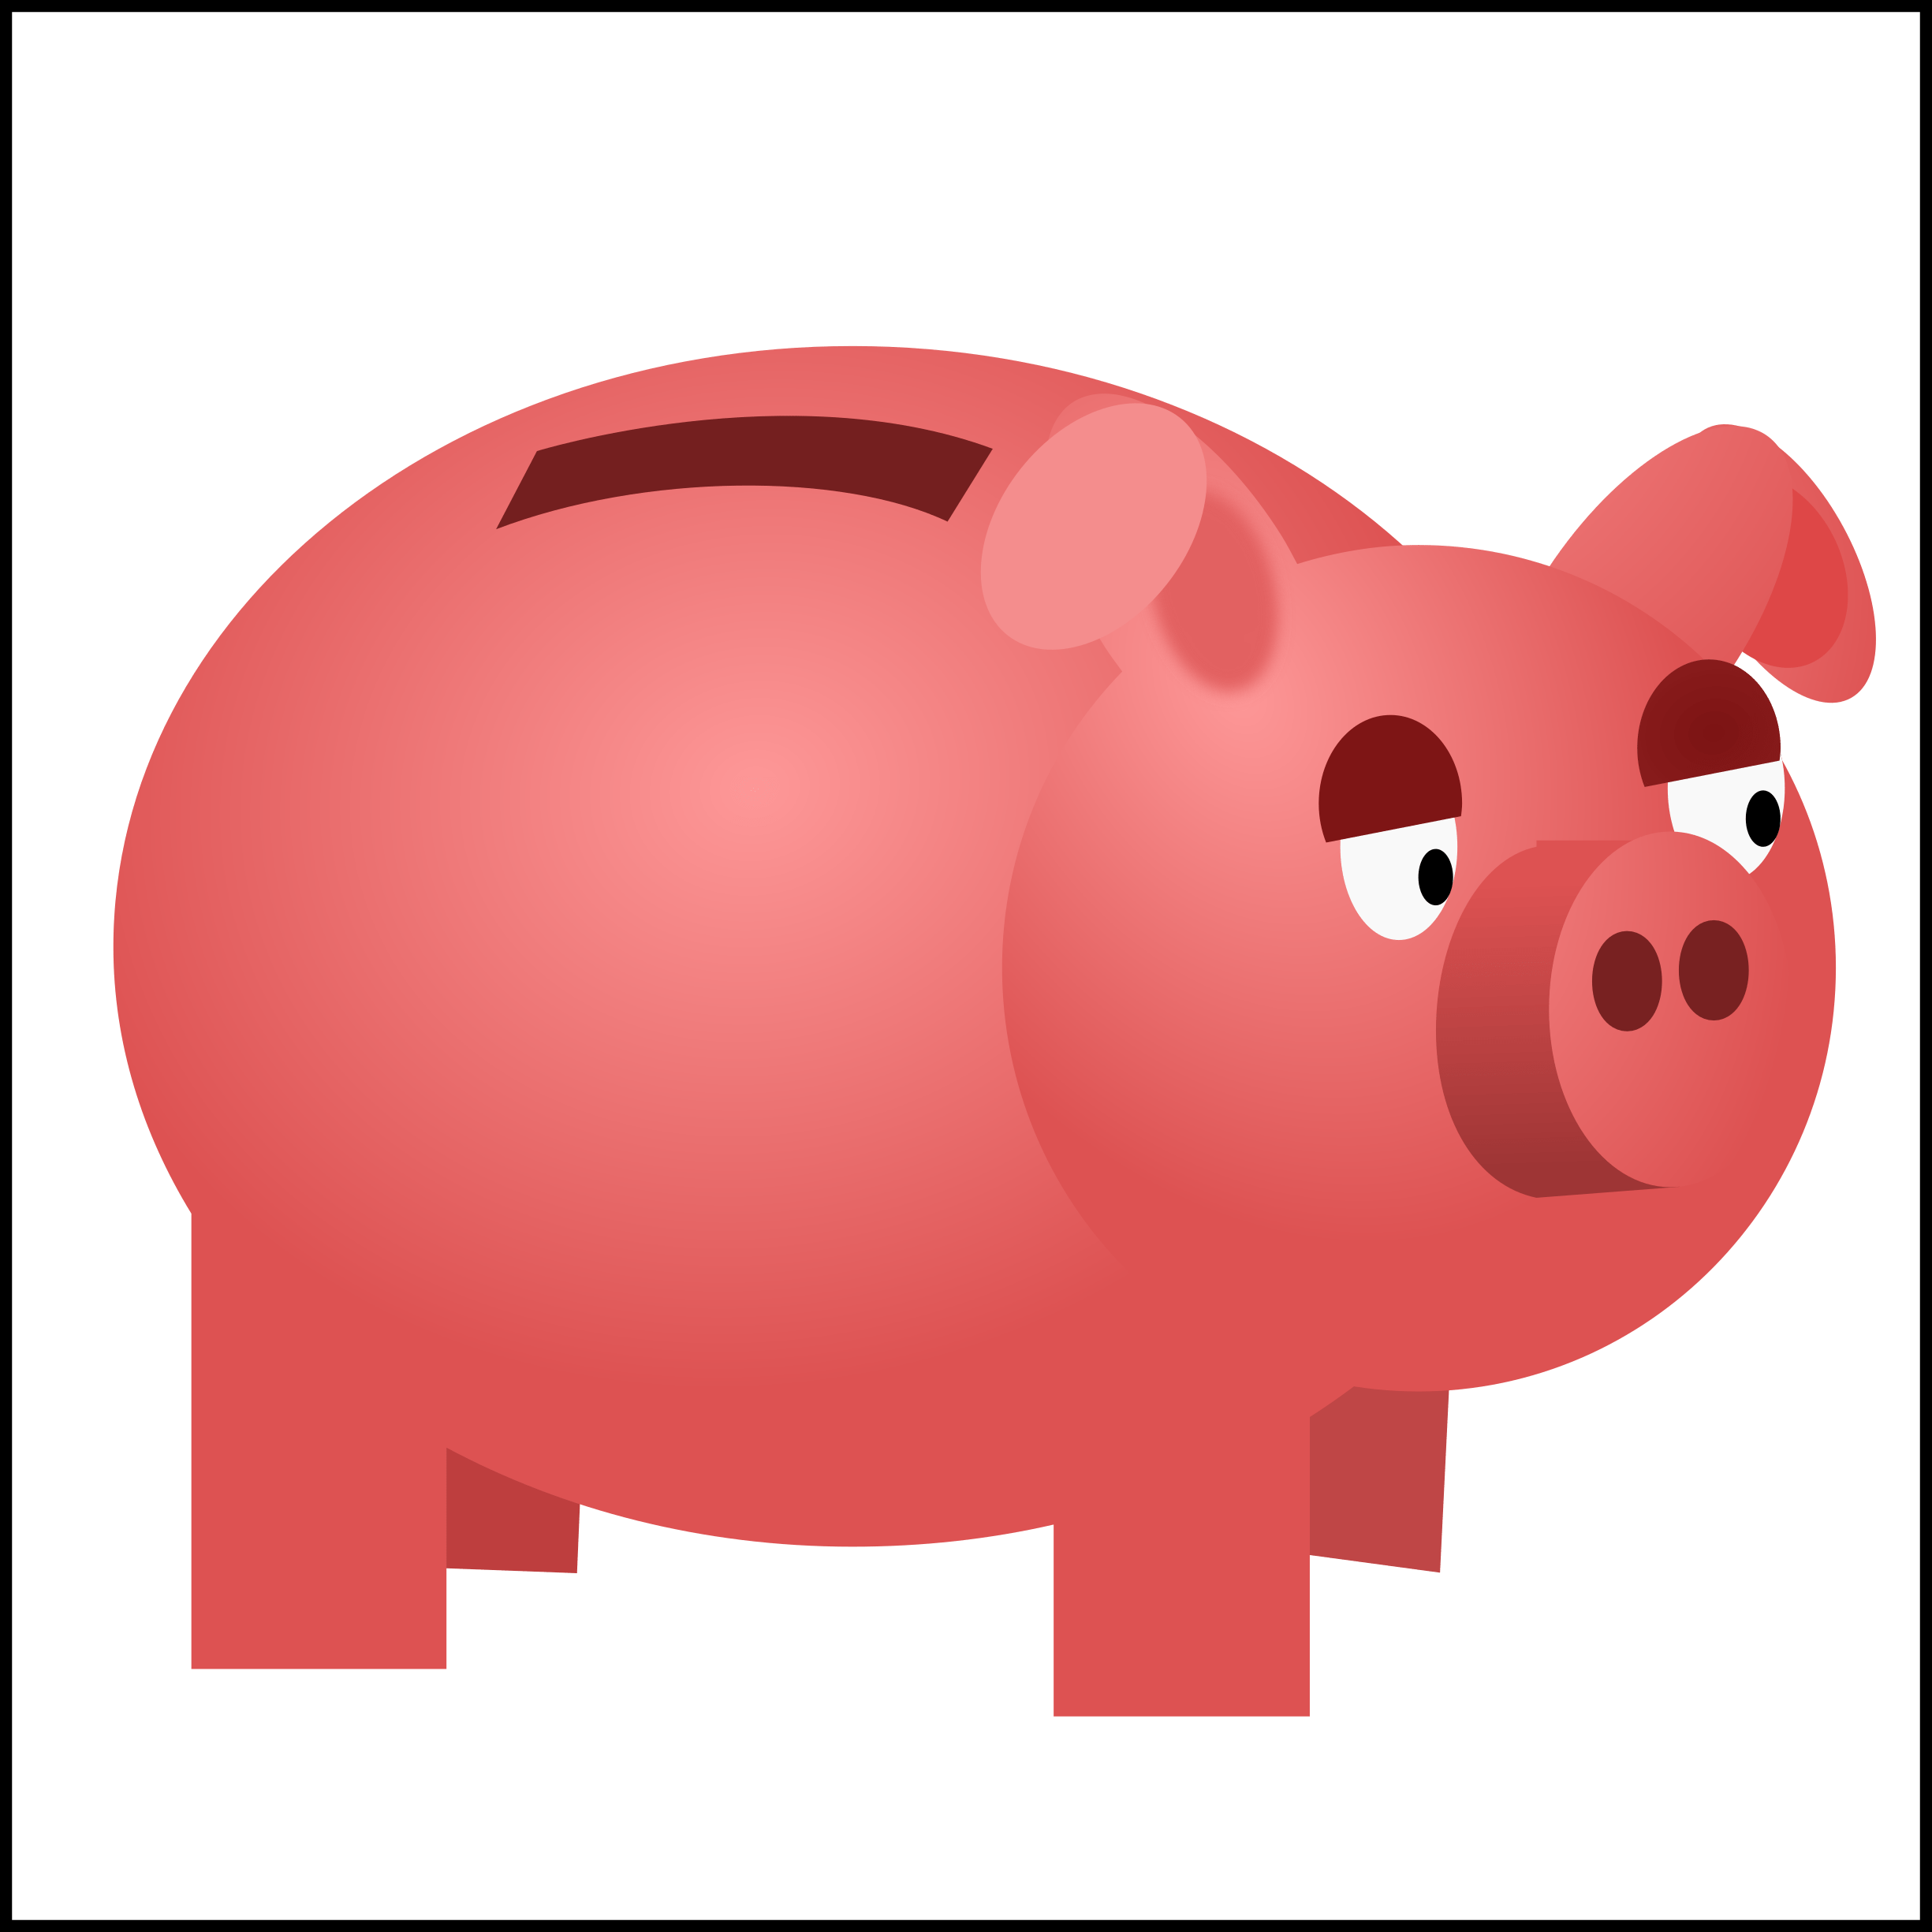 Piggy bank clipart kids svg Appealing Piggy Bank Spin And Color The Stem Laboratory For To ... svg